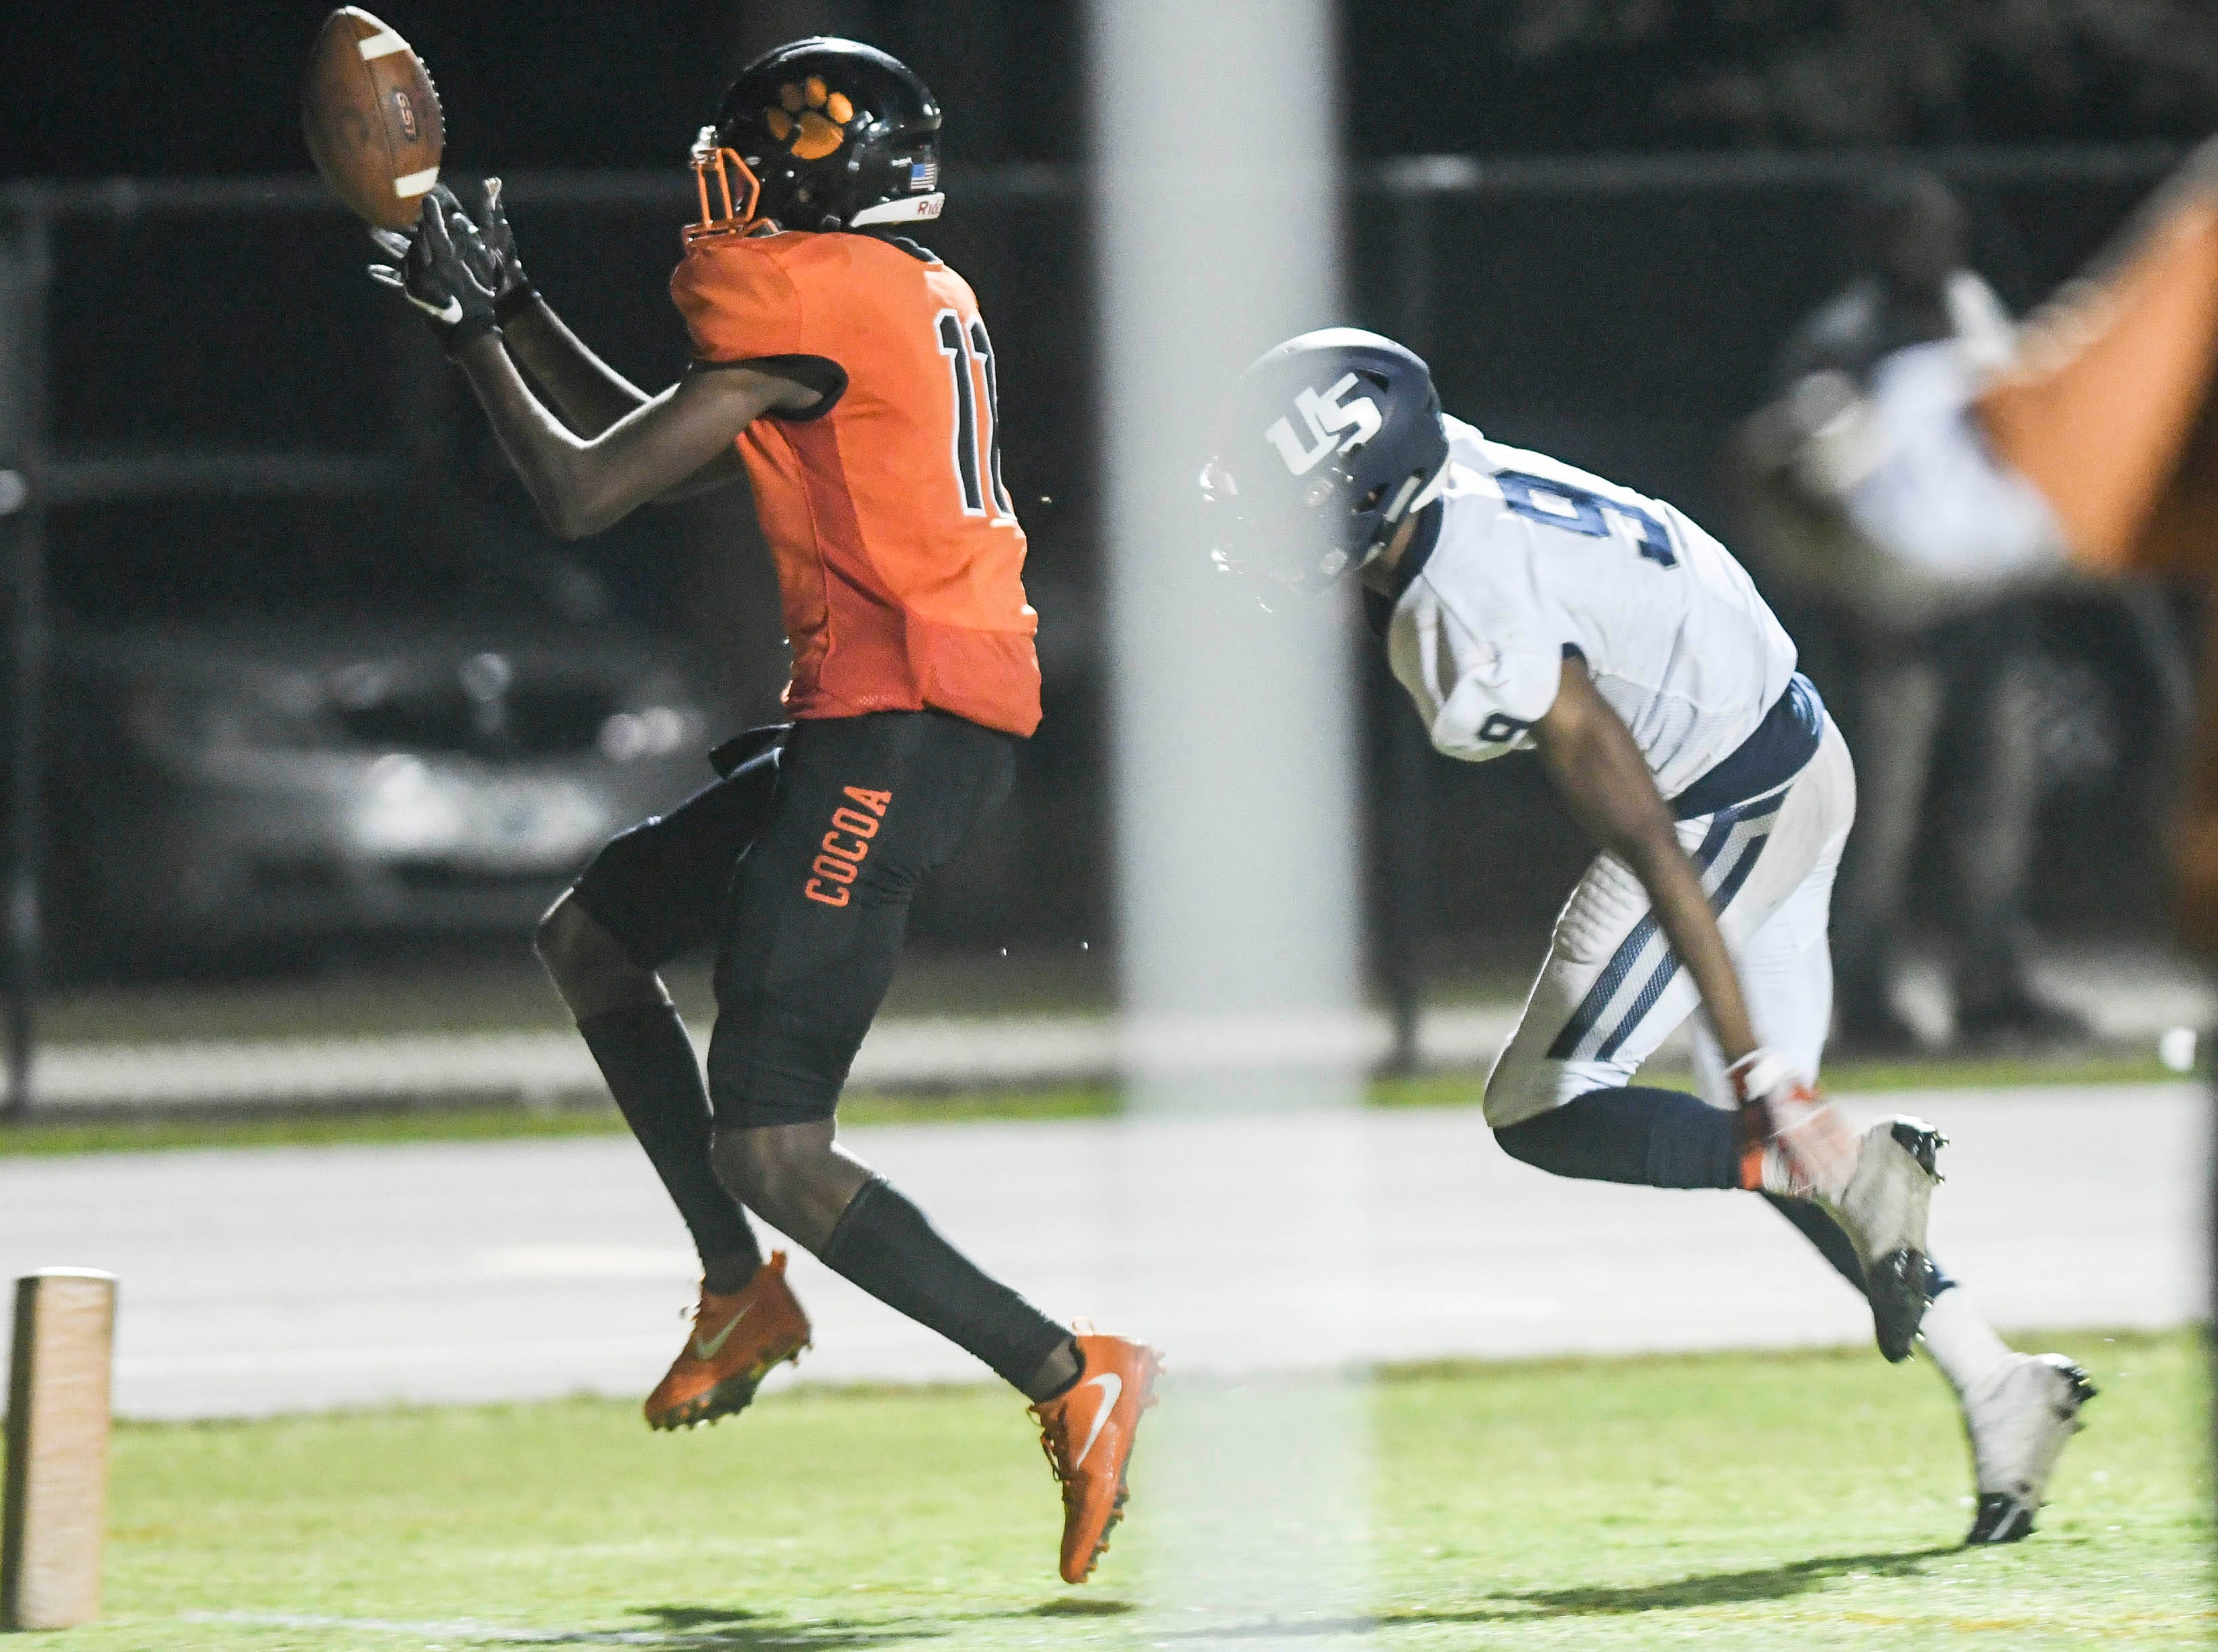 Jamari Williams of Cocoa catches a TD pass late in Friday's Class 4A state semifinal against University.